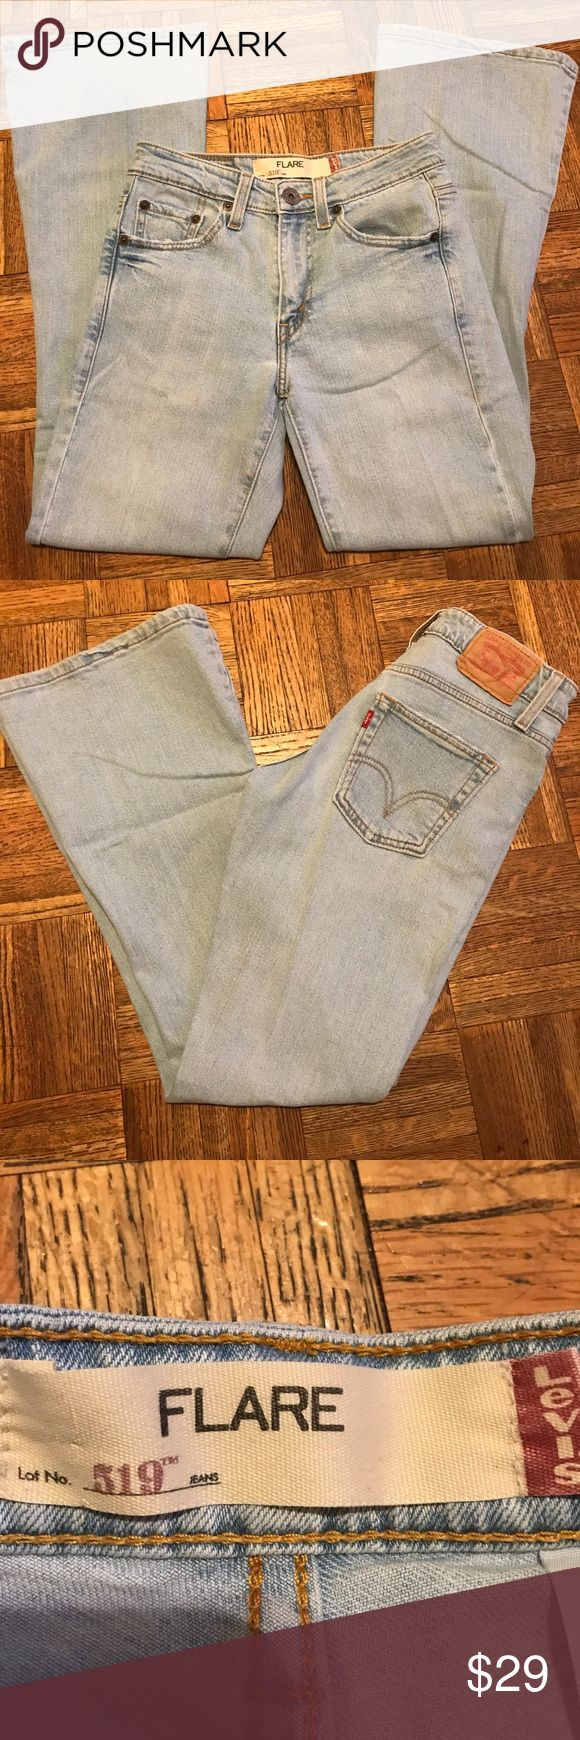 Levi's 519 Flare Light Washed Jeans Size 1S JR This is a really nice pair of jeans. They are Flare and light washed. Size 1S JR Levi's Jeans Flare & Wide Leg